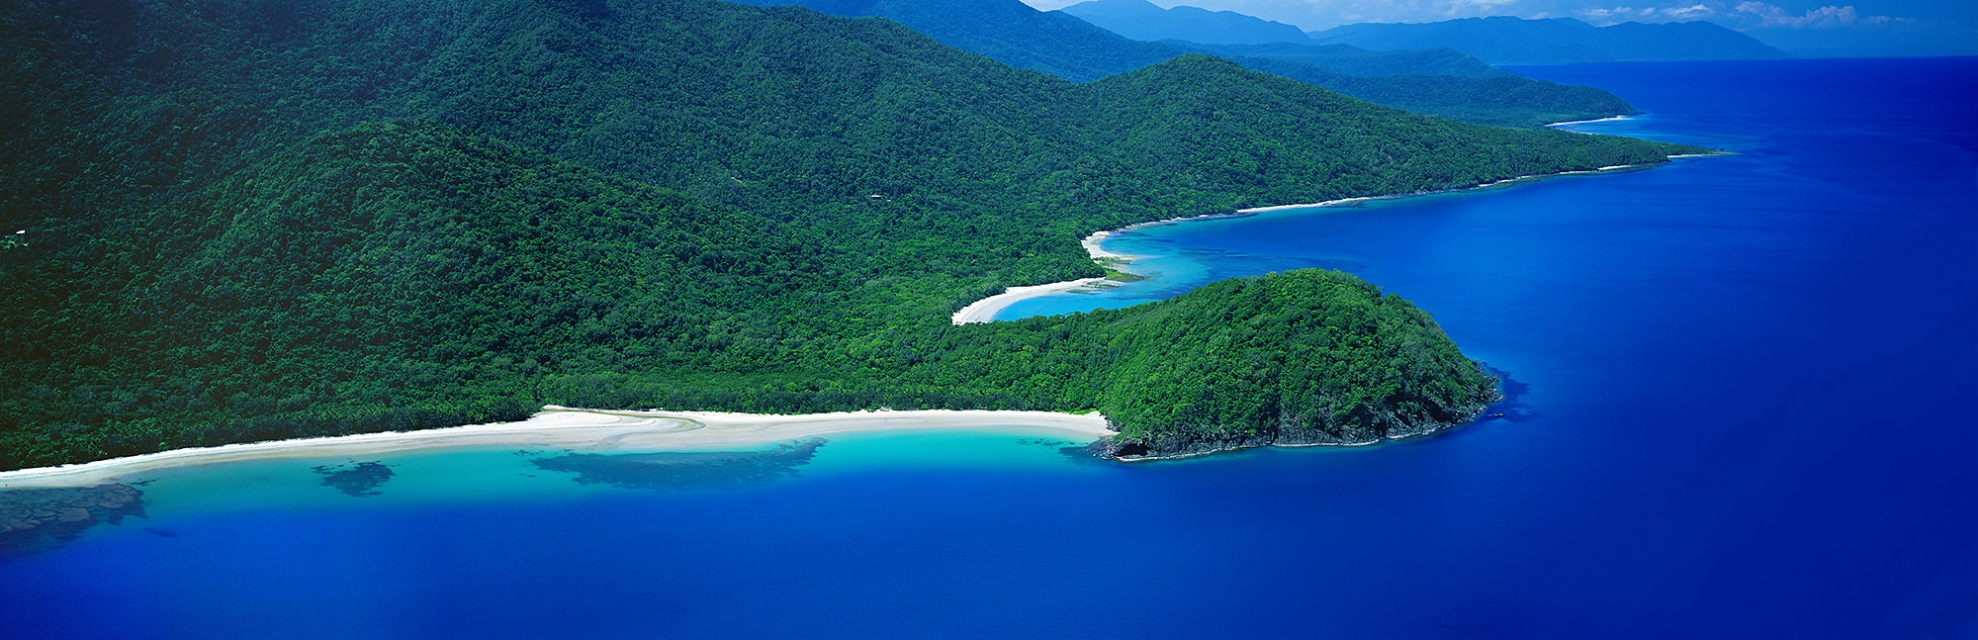 Cape-Tribulation-aerial-beach-rainforest-buy-limited-edition-photography-ric-steininger-gallery-Cape-Tribulation